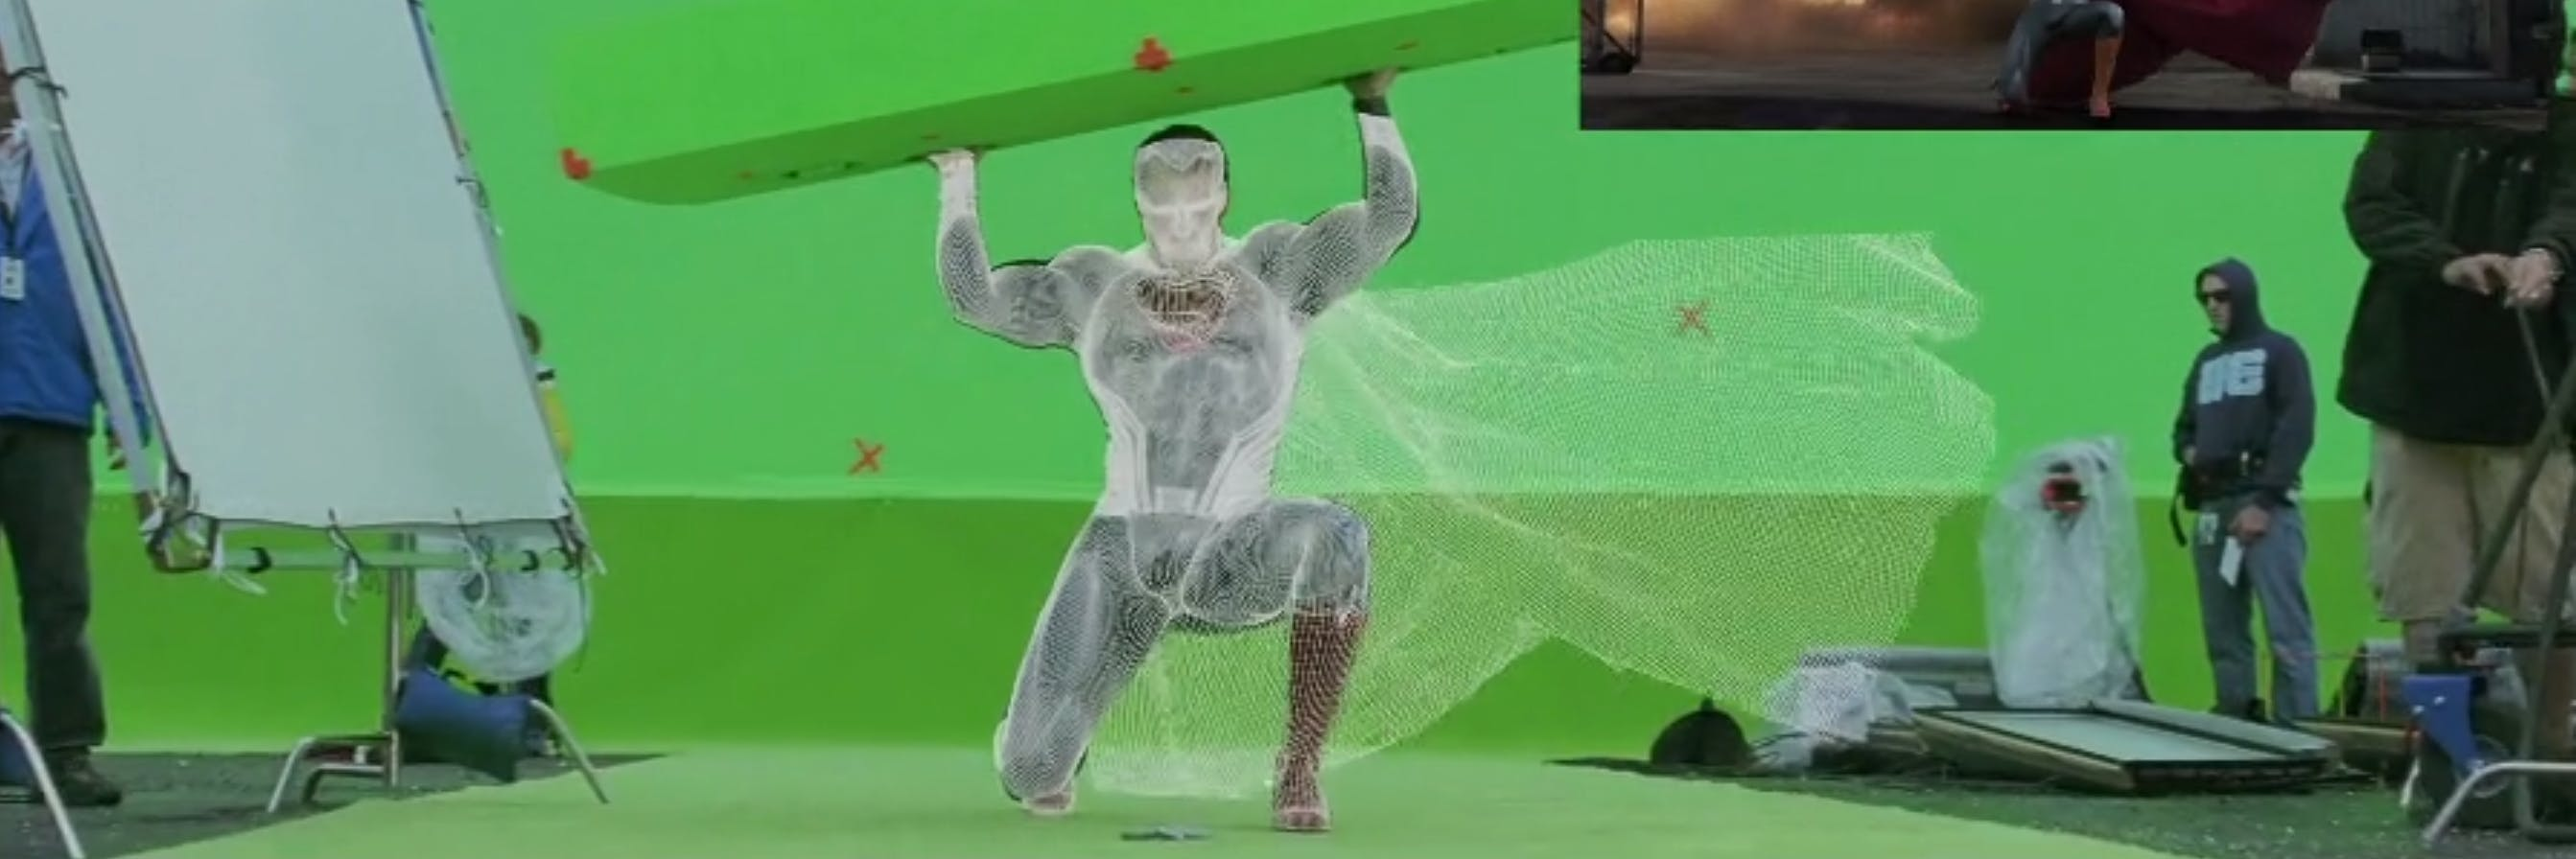 'Batman v Superman' VFX reel.